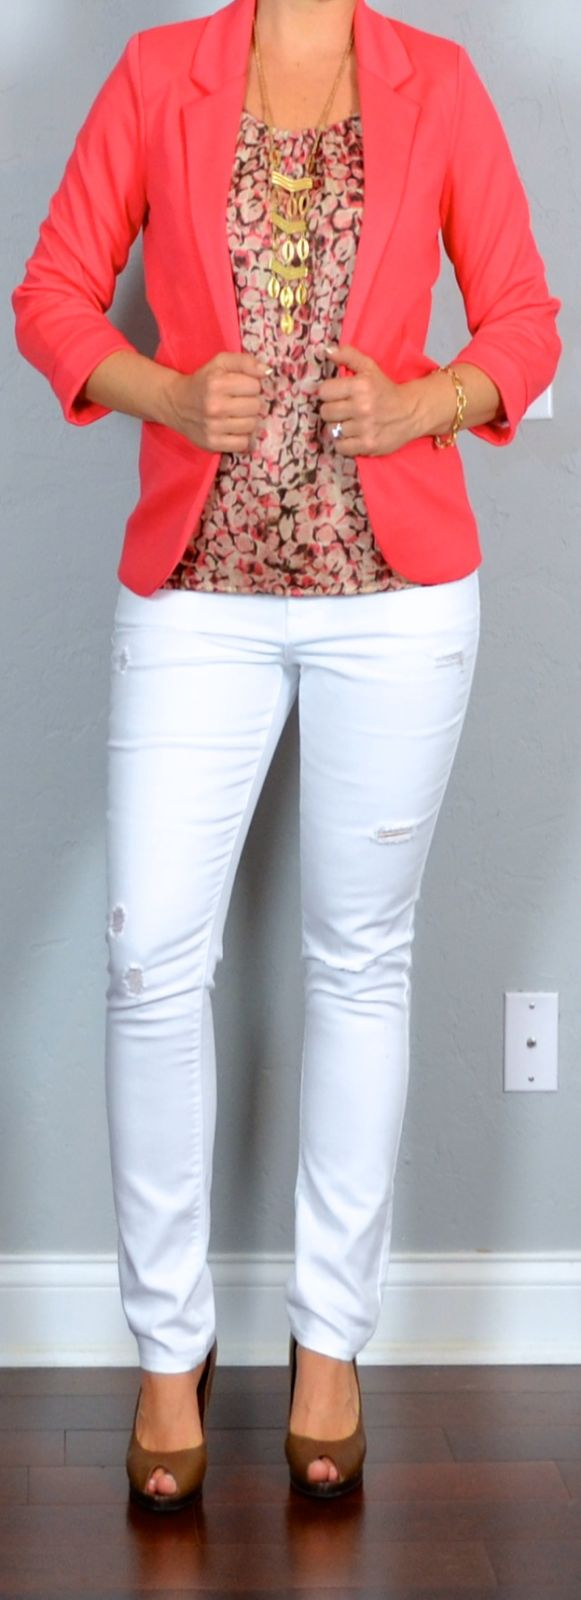 I'm always wondering what to wear with my white corduroys. Love the mixture of browns and coral.